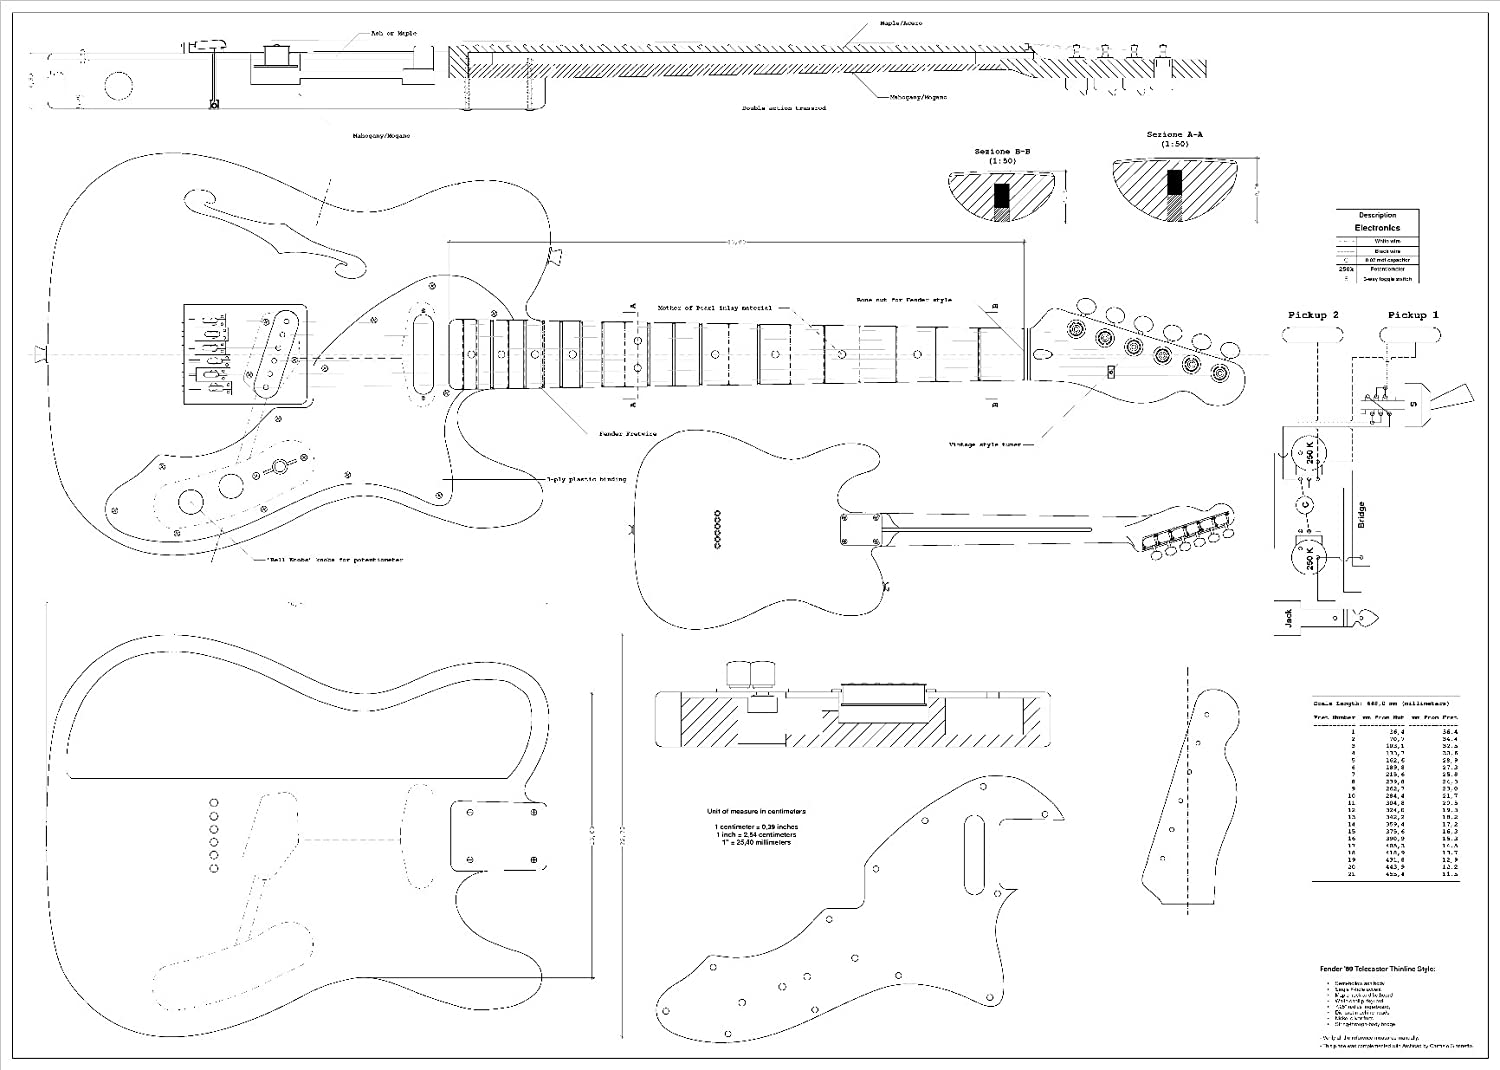 Full Scale Plans For The Fender Telecaster 1969 Thinline 52 American Vintage 4 Way Wiring Diagram Electric Guitar Musical Instruments